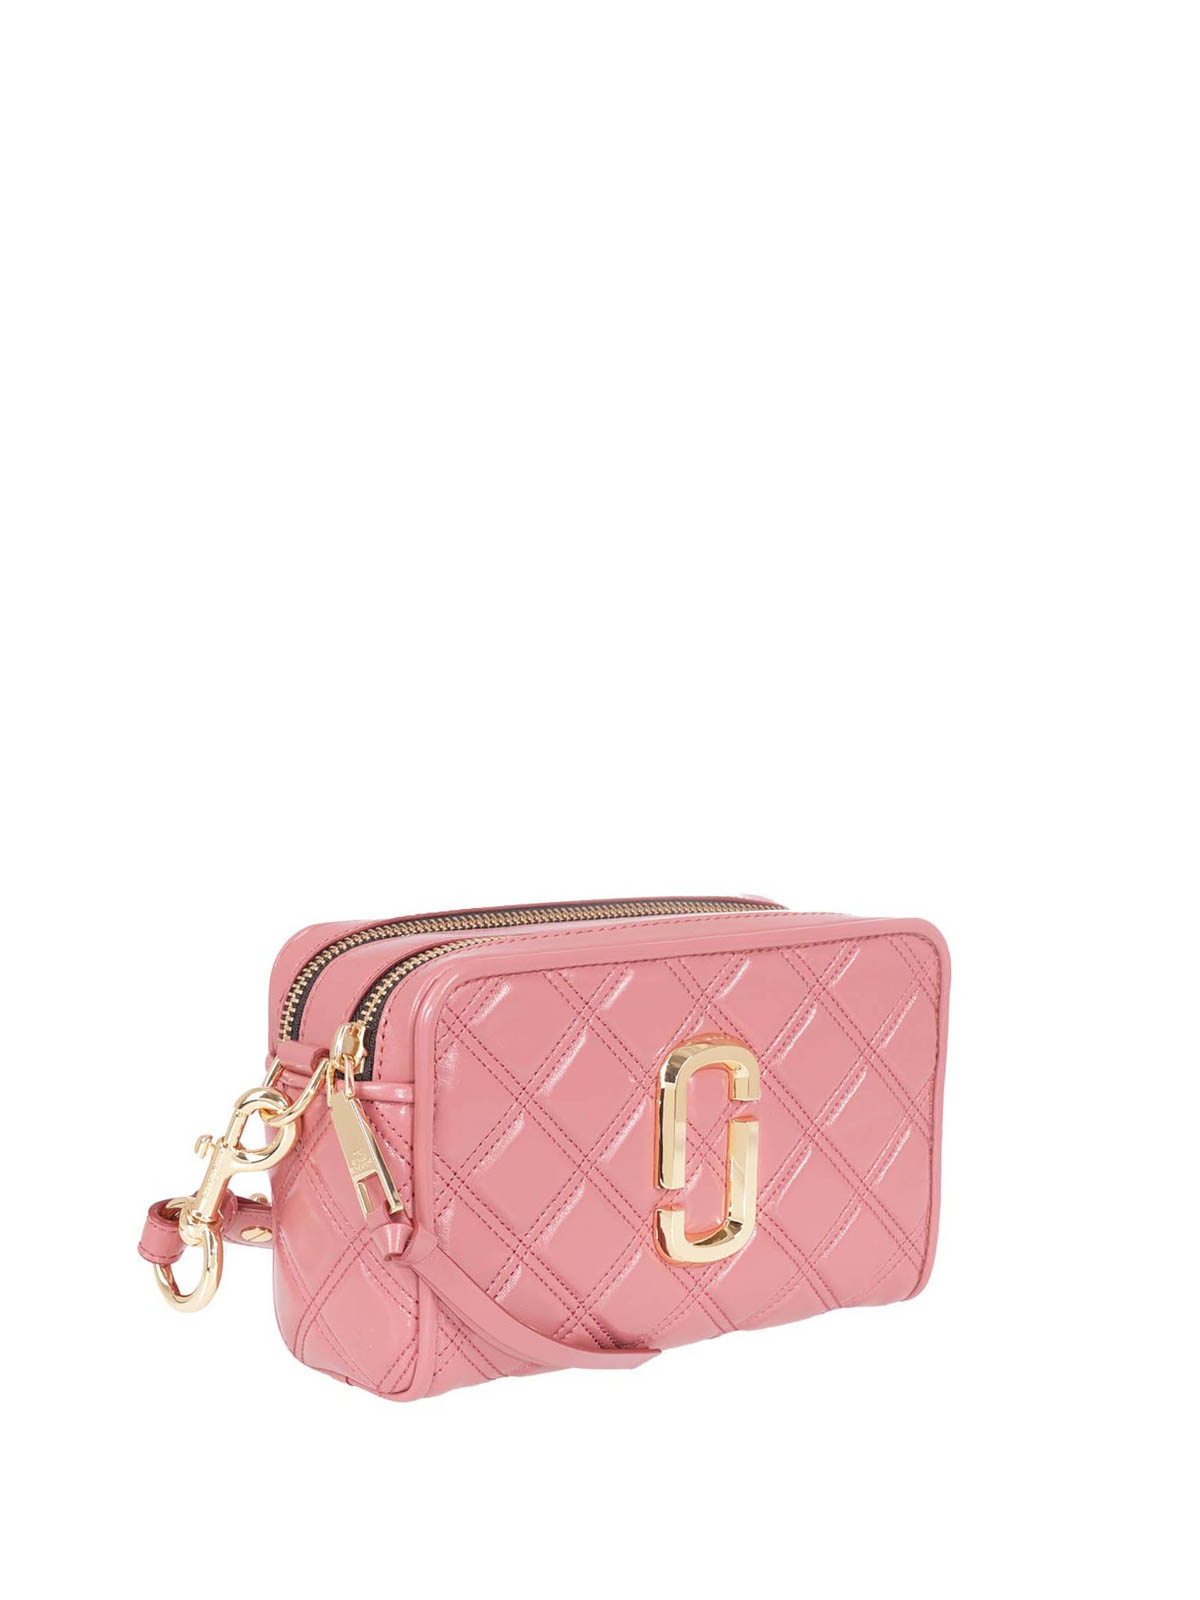 The Quilted Softshot 21 - Rose